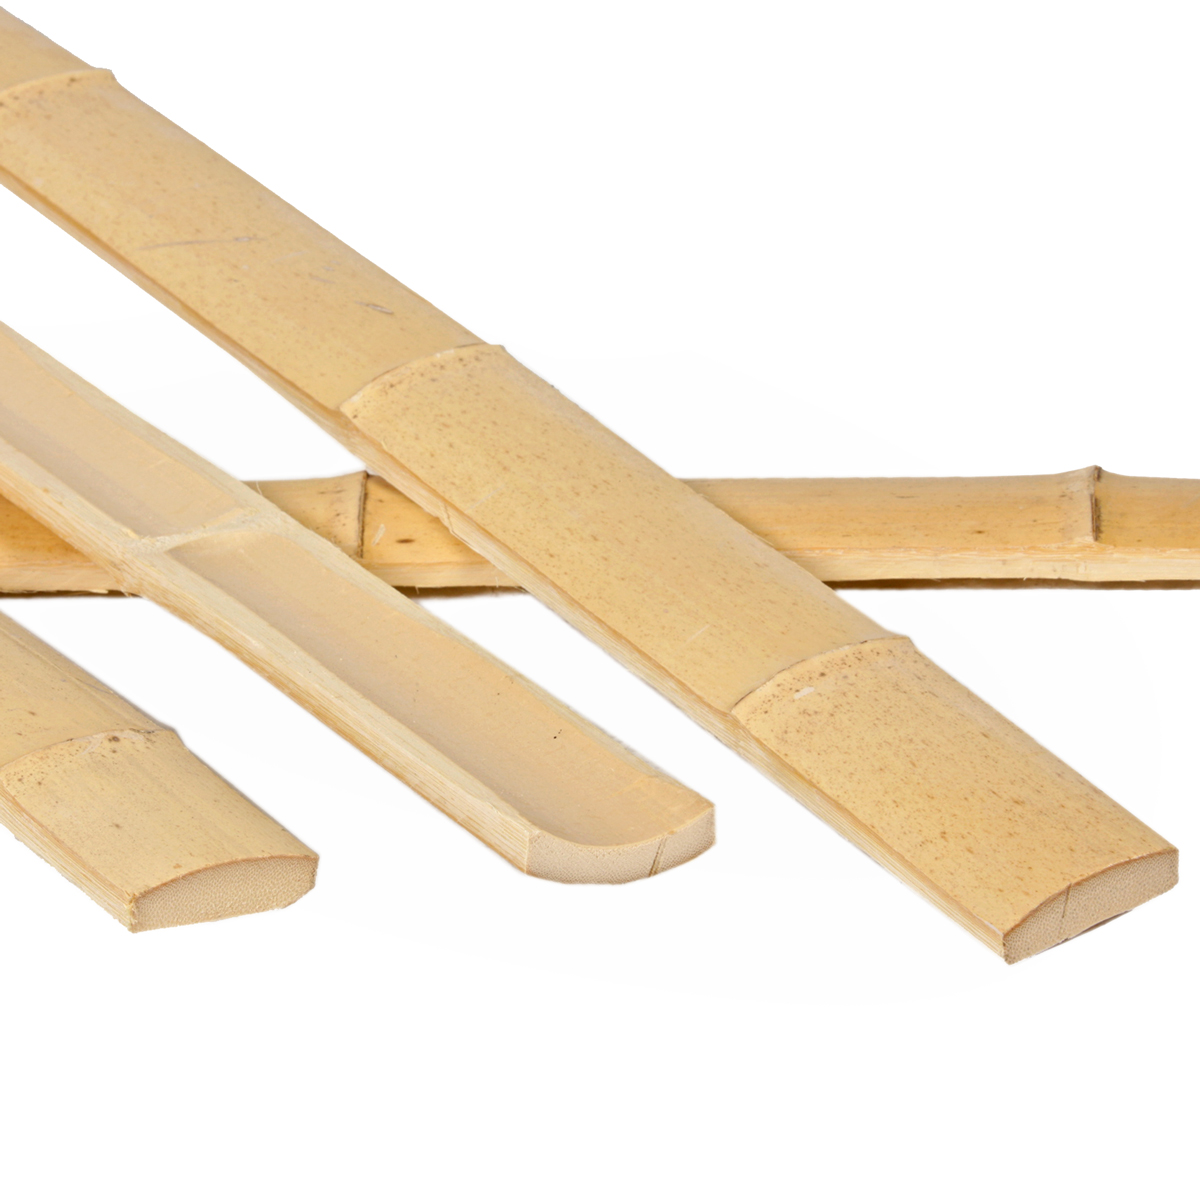 45mm Natural Moso Bamboo Slats x 2 4 metres (1 8in x 7ft10)